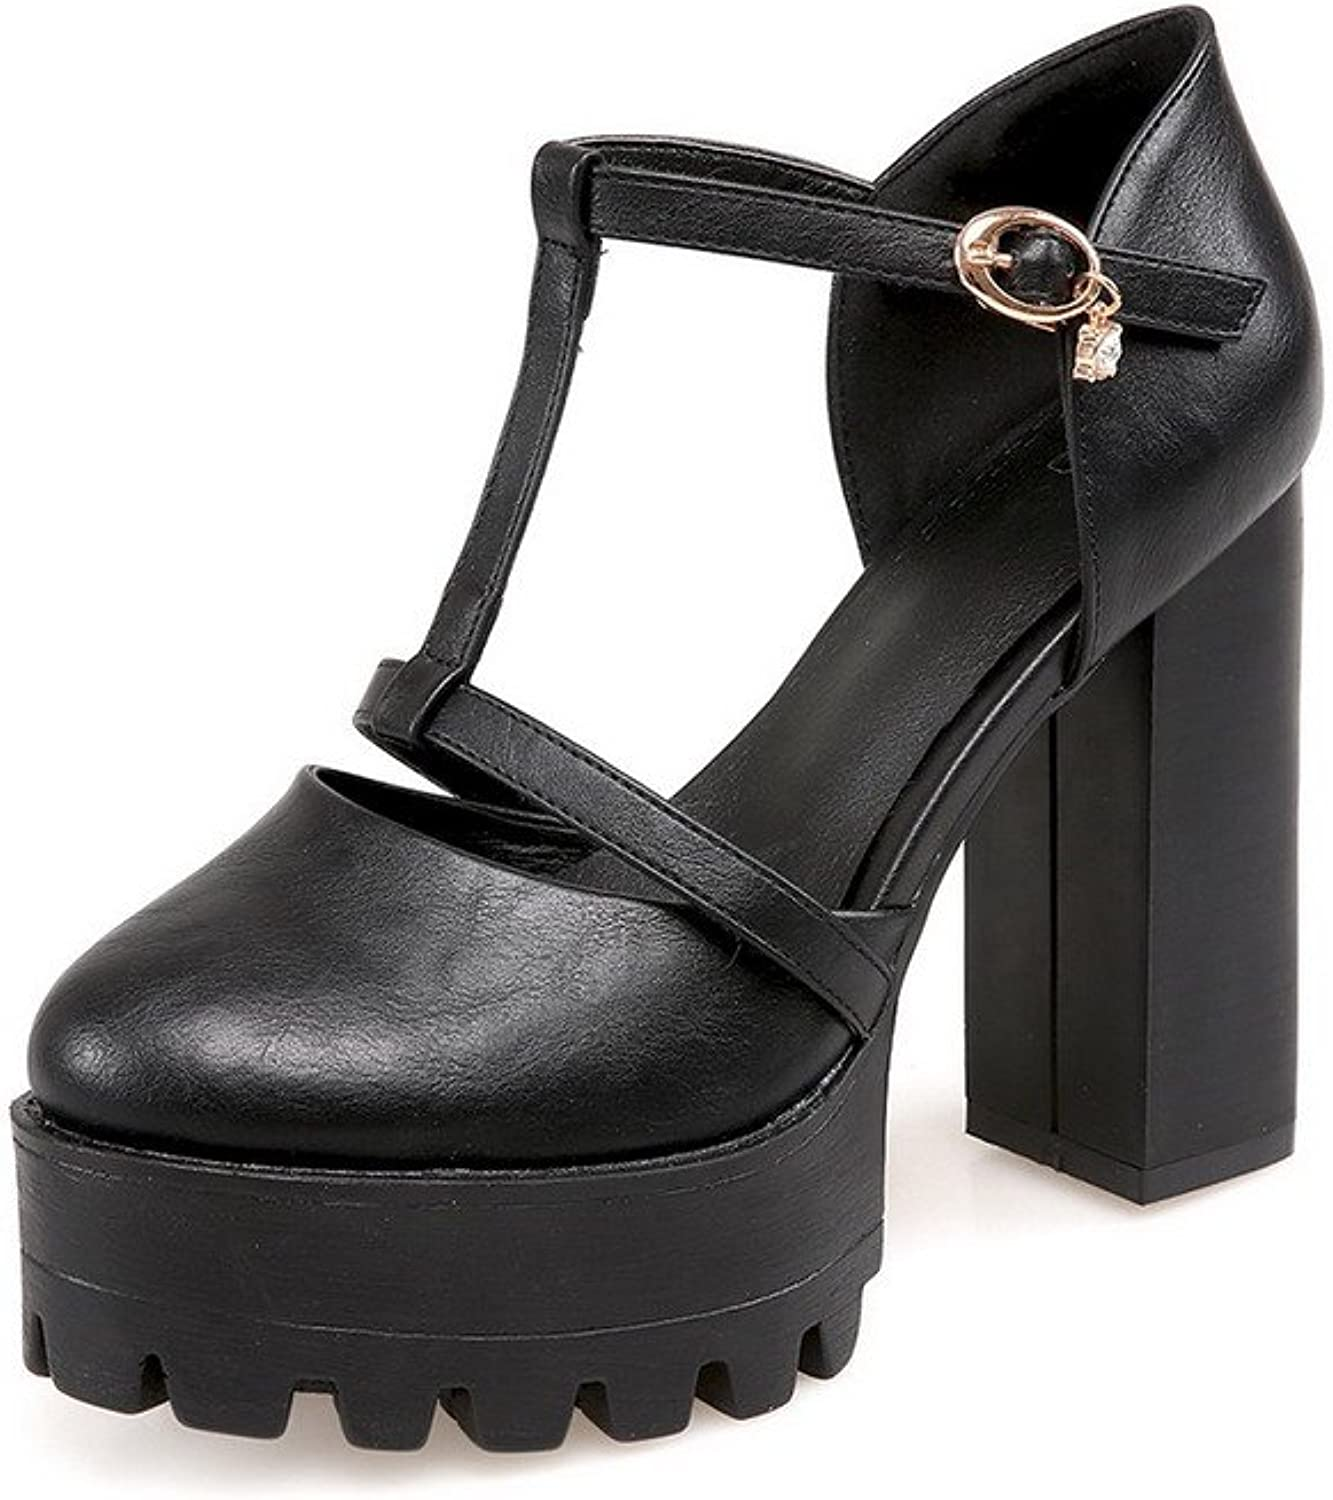 WeenFashion Women's High-Heels Soft Material Solid Buckle Round Closed Toe Sandals